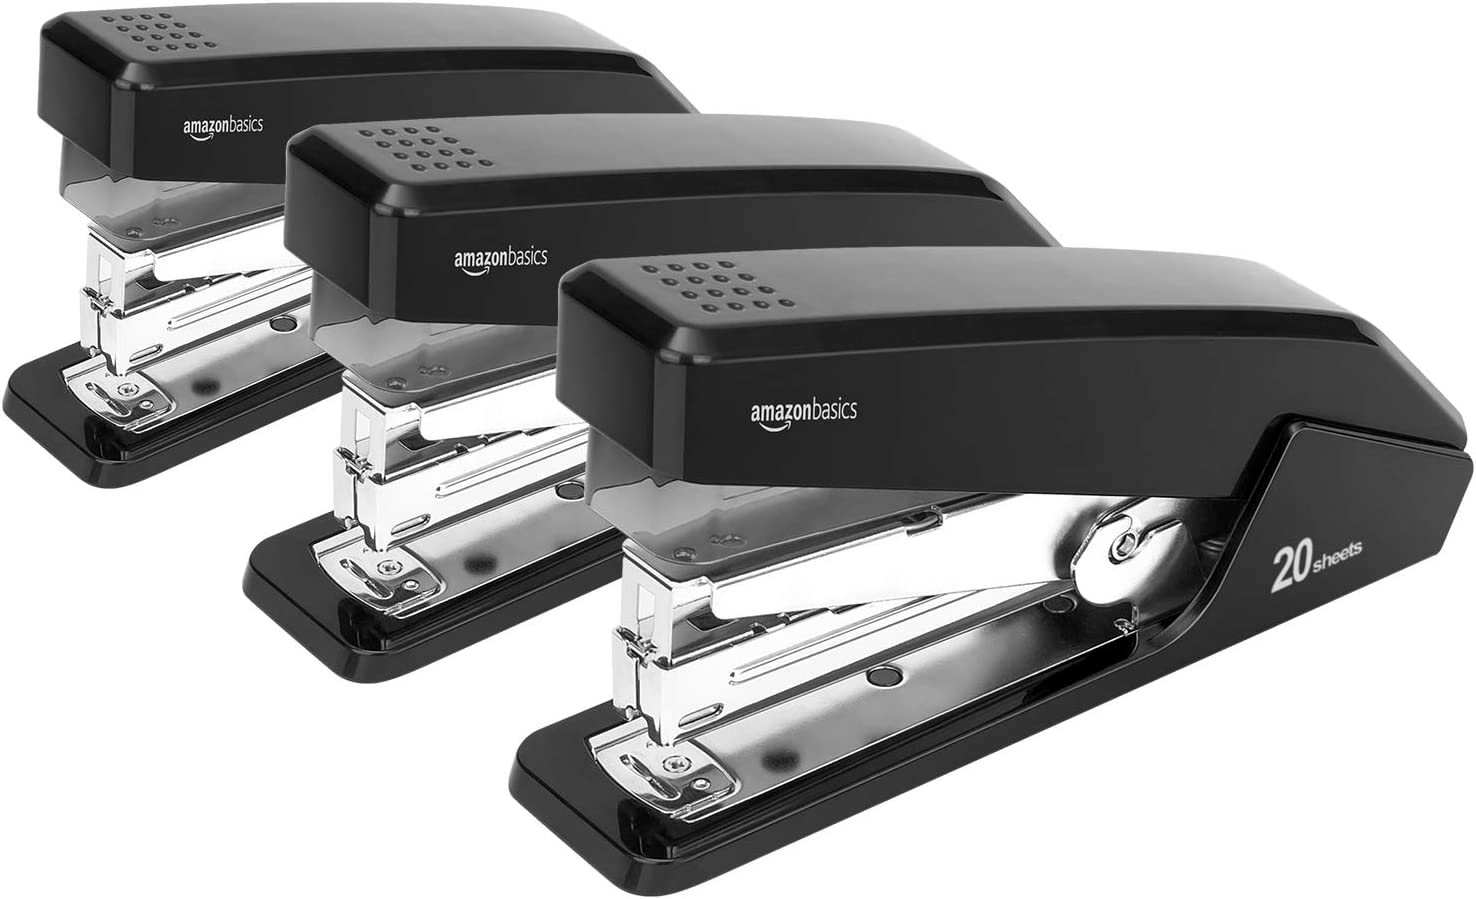 AmazonBasics Reduced Effort Desktop Stapler, Full-Strip, 20 Sheet Capacity - Black, 3 pack